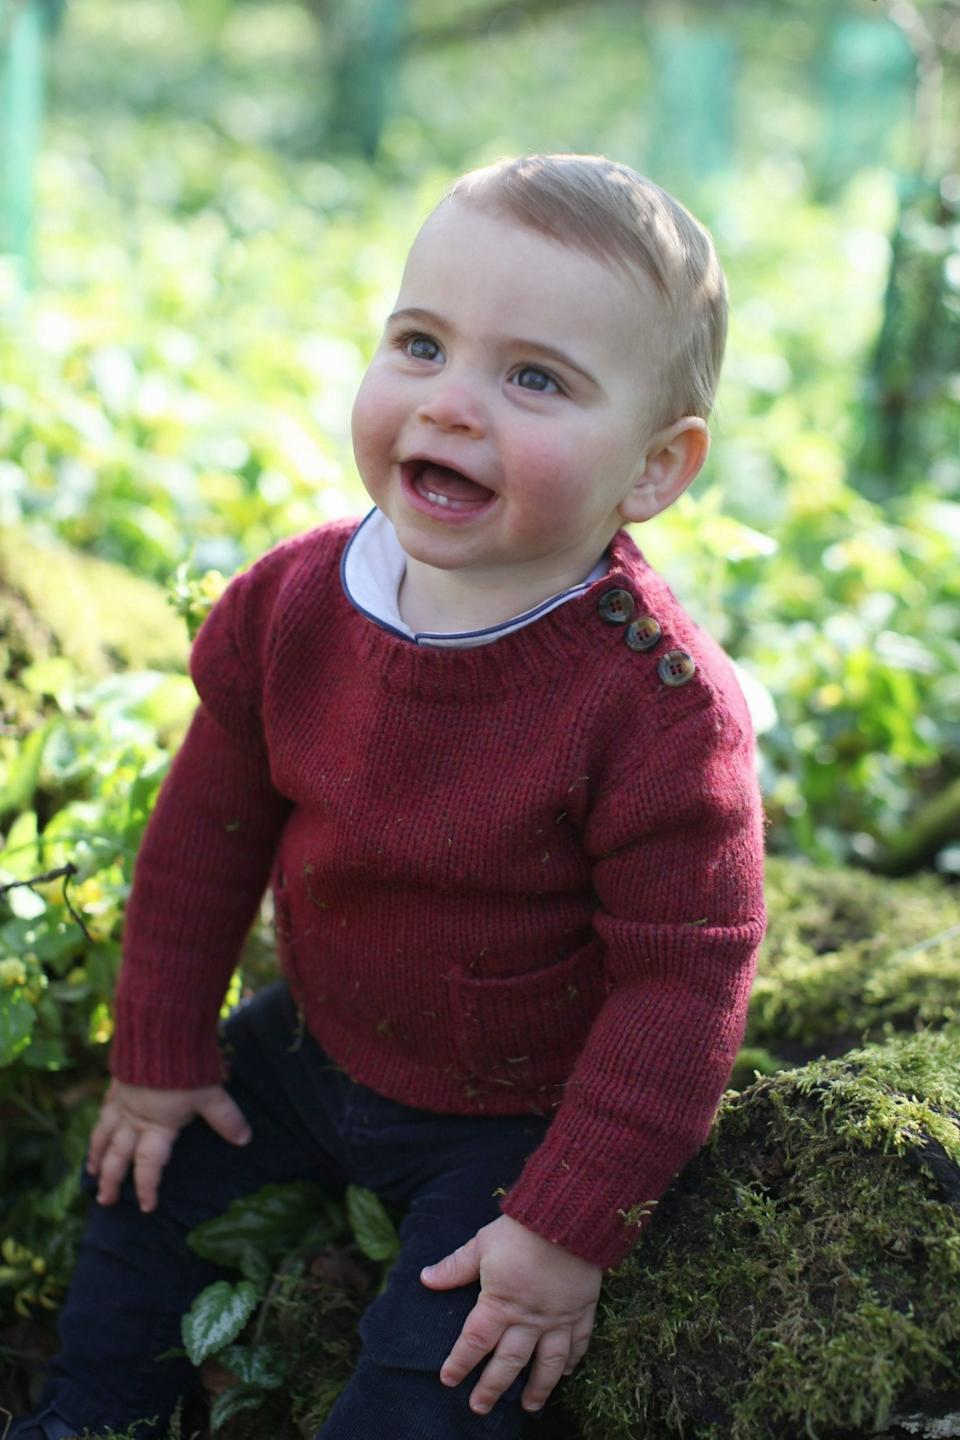 Prince Louis in 2019 (HRH The Duchess of Cambridge)